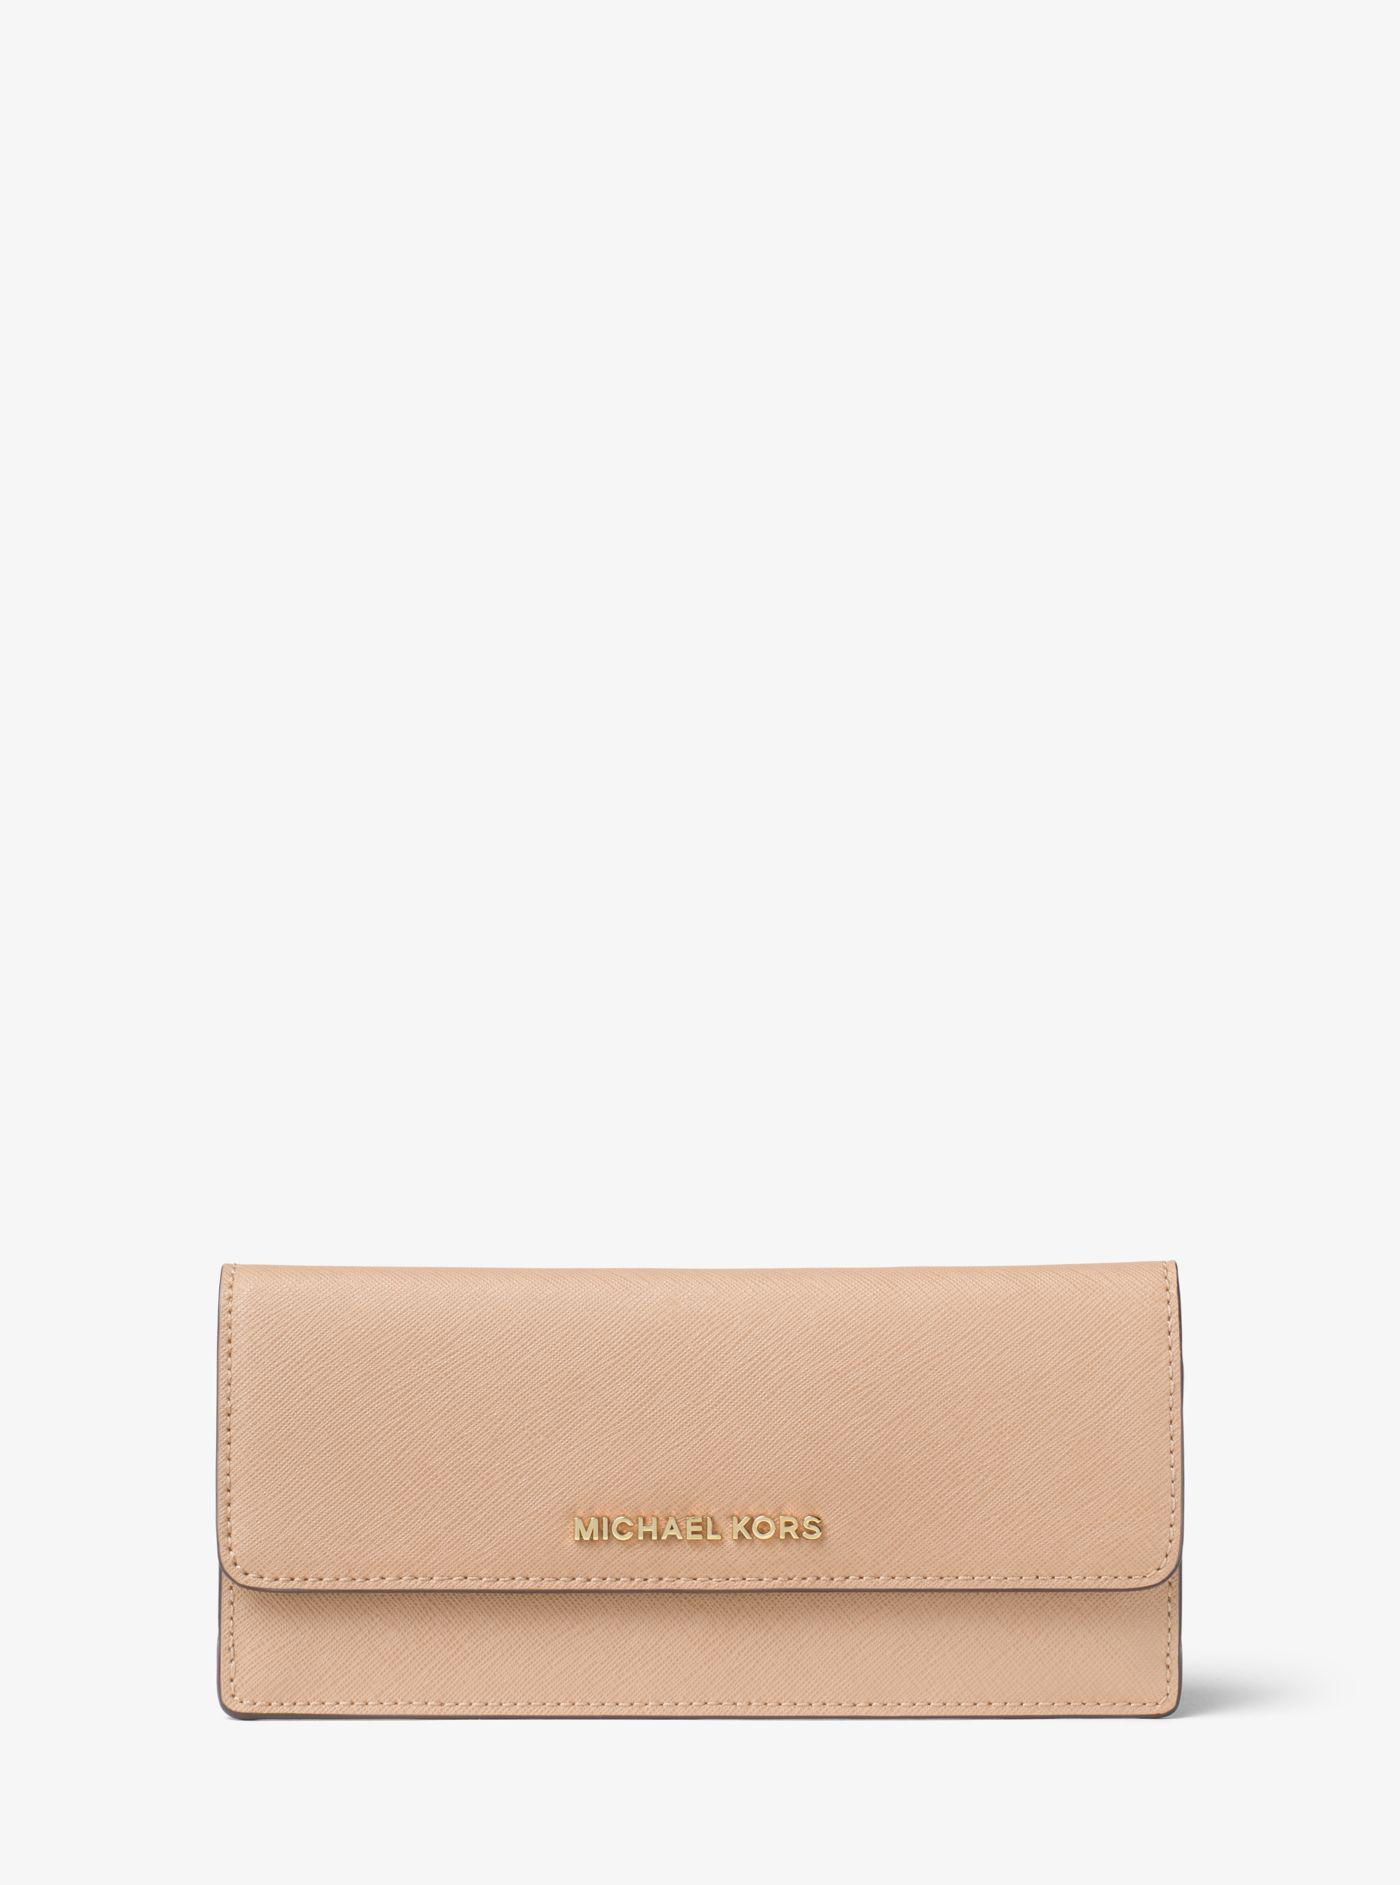 09841c6b28bd Lyst - Michael Kors Travel Slim Saffiano Leather Wallet in Natural